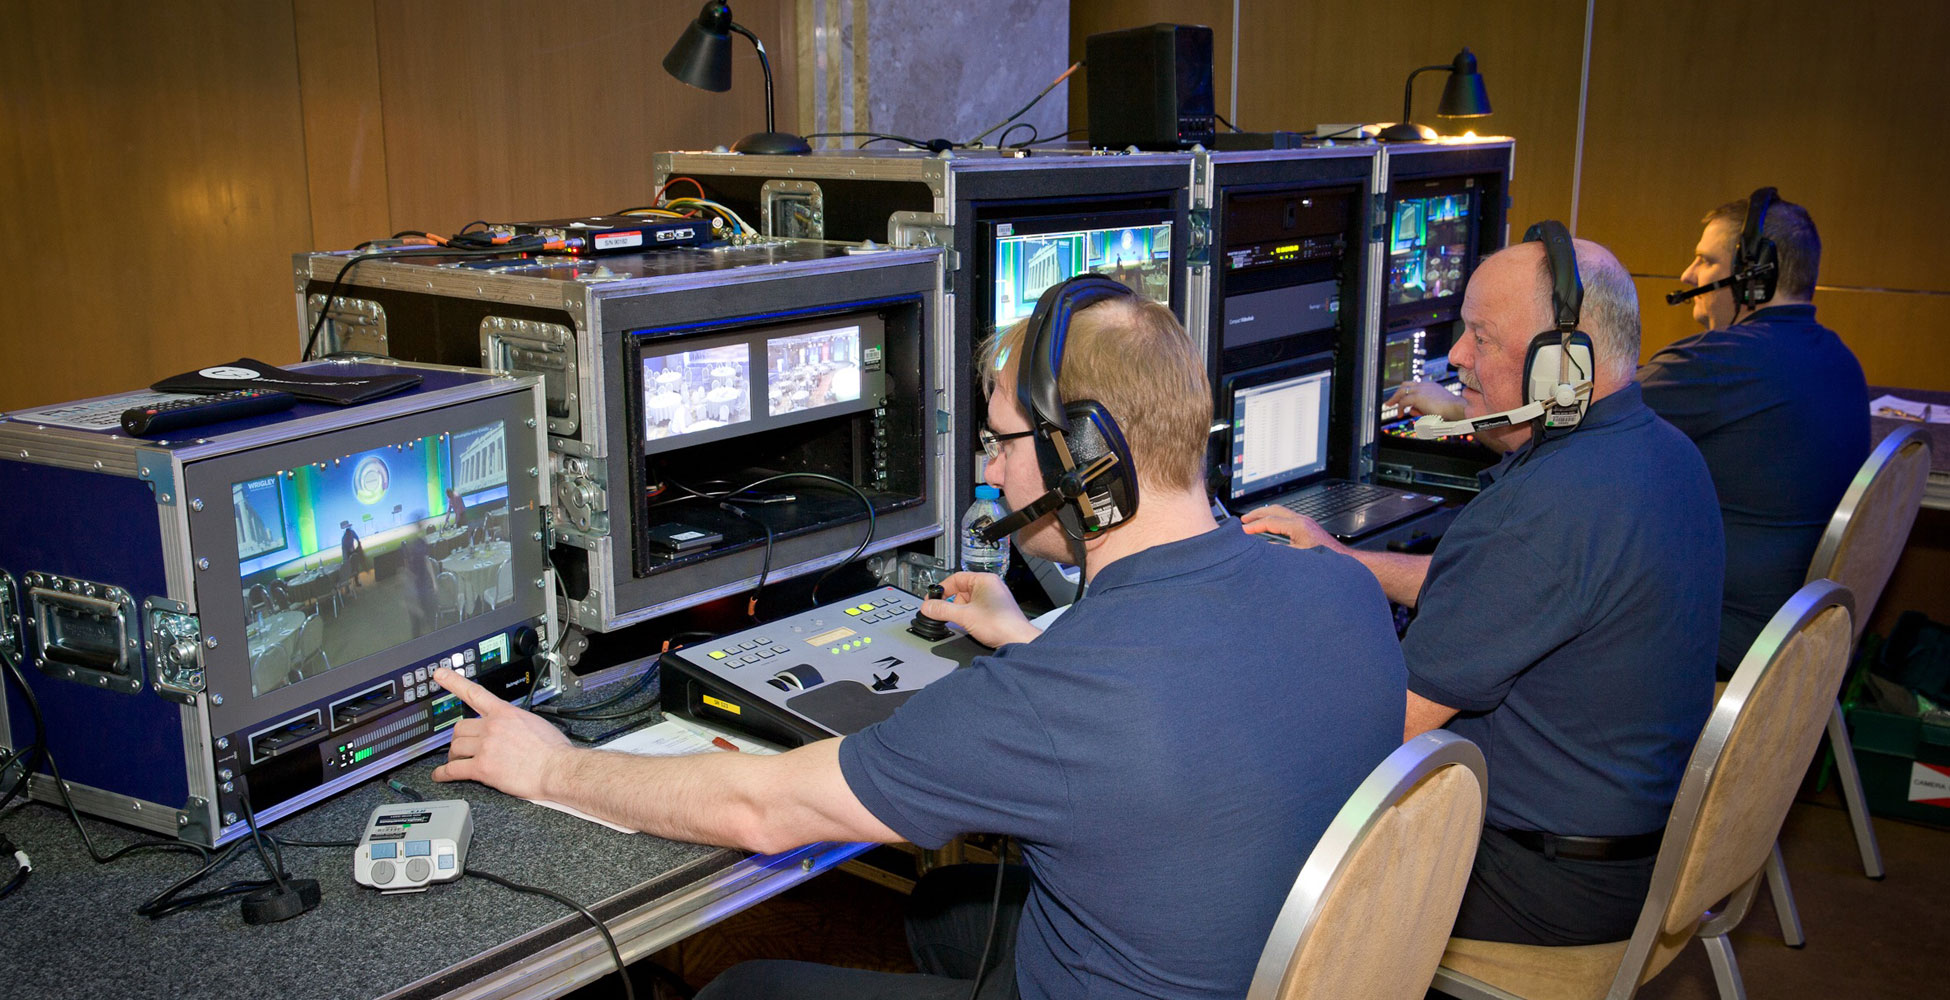 PL1 Events - Broadcasting Plymouth Devon South West UK